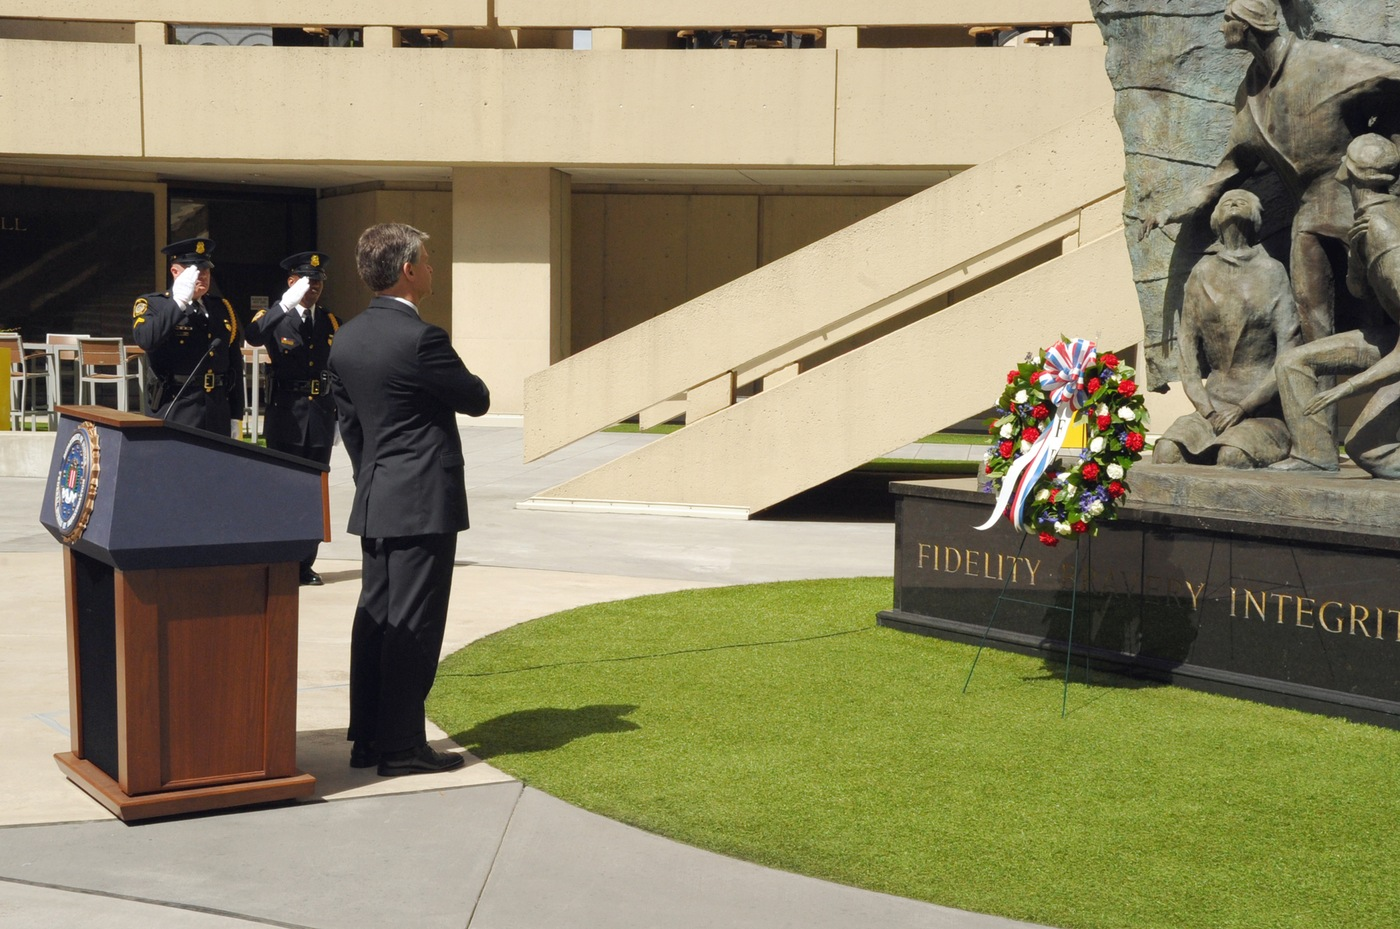 FBI Director Christopher Wray faces a wreath placed in honor of fallen special agents at a May 14, 2019 ceremony at FBI Headquarters in Washington, D.C., during National Police Week.